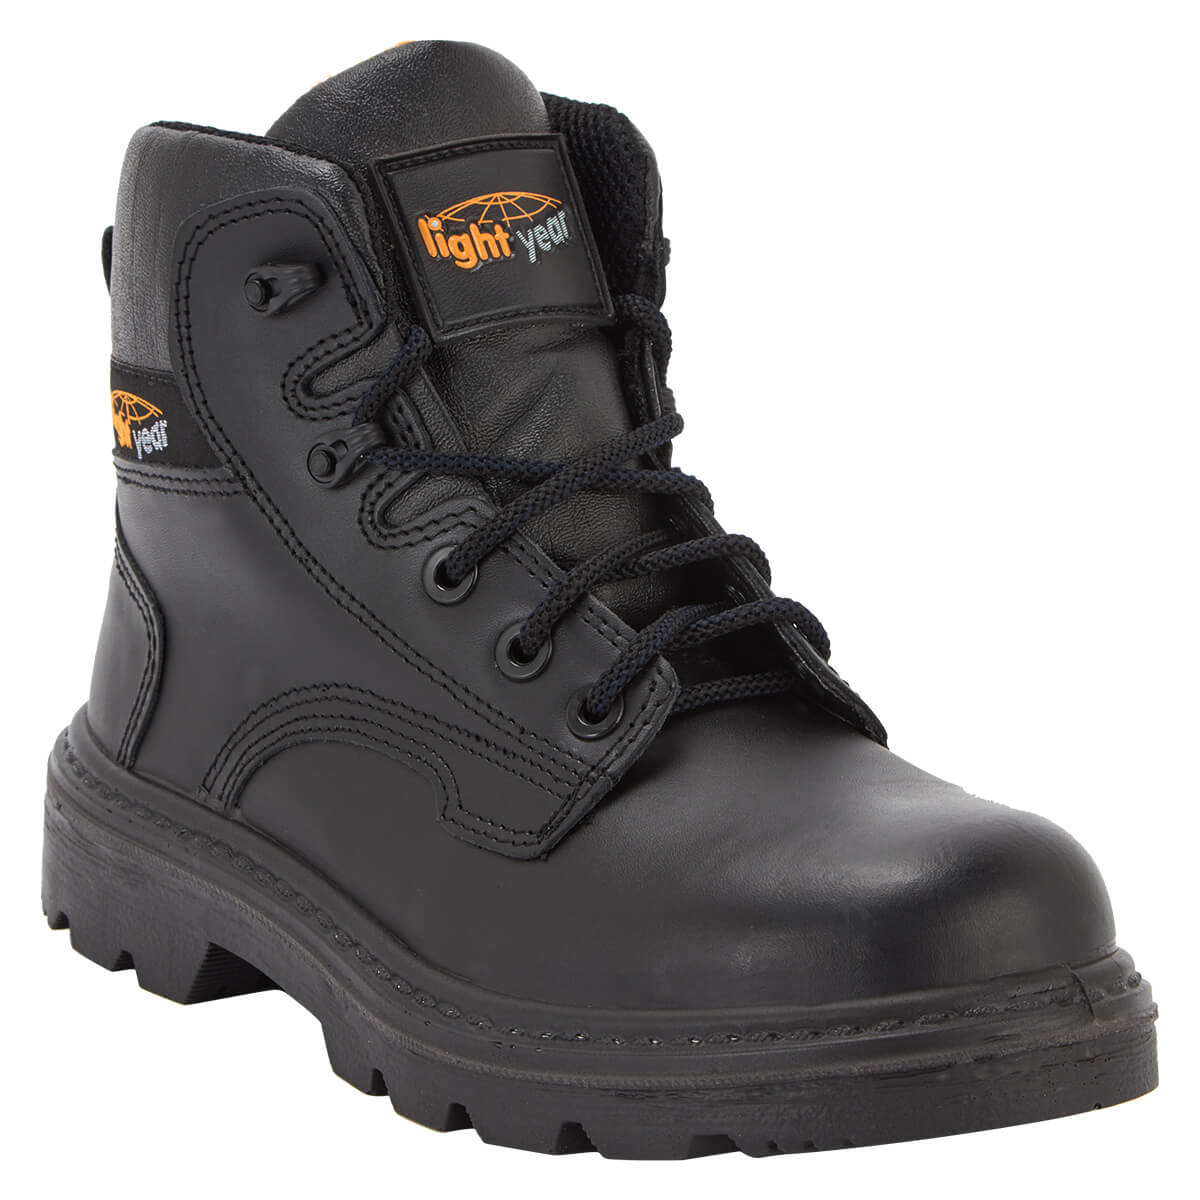 Lightyear Pioneer Safety Boot S3Lightyear Pioneer Safety Boot S3